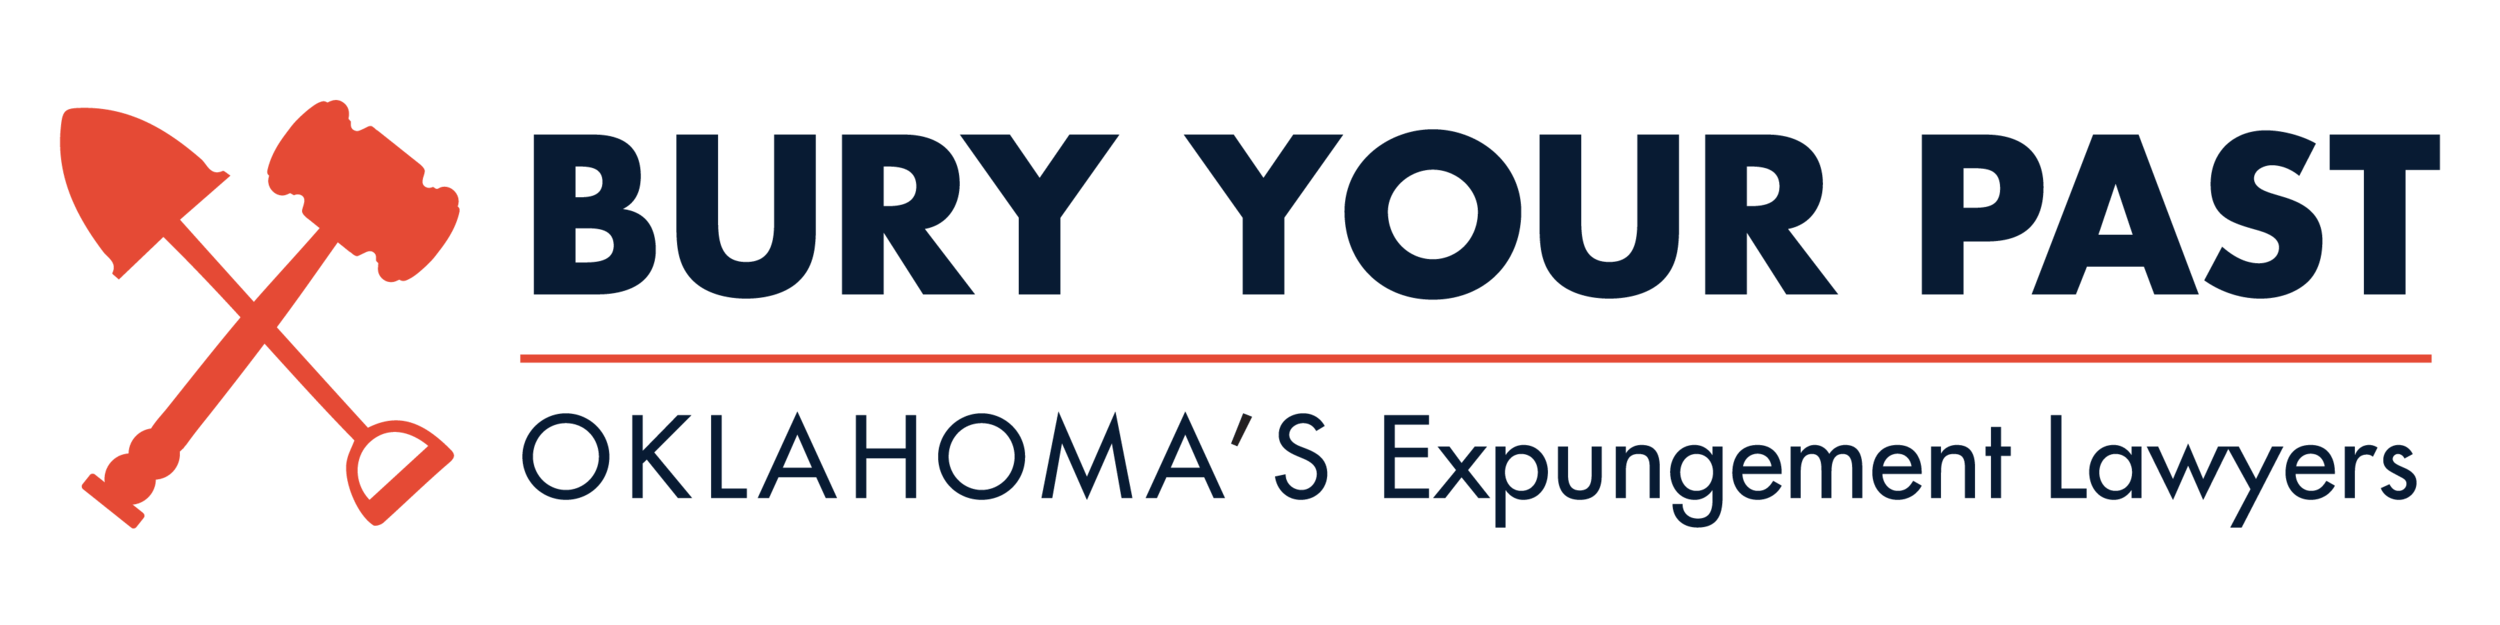 Oklahoma Expungement Attorneys | Bury Your Past